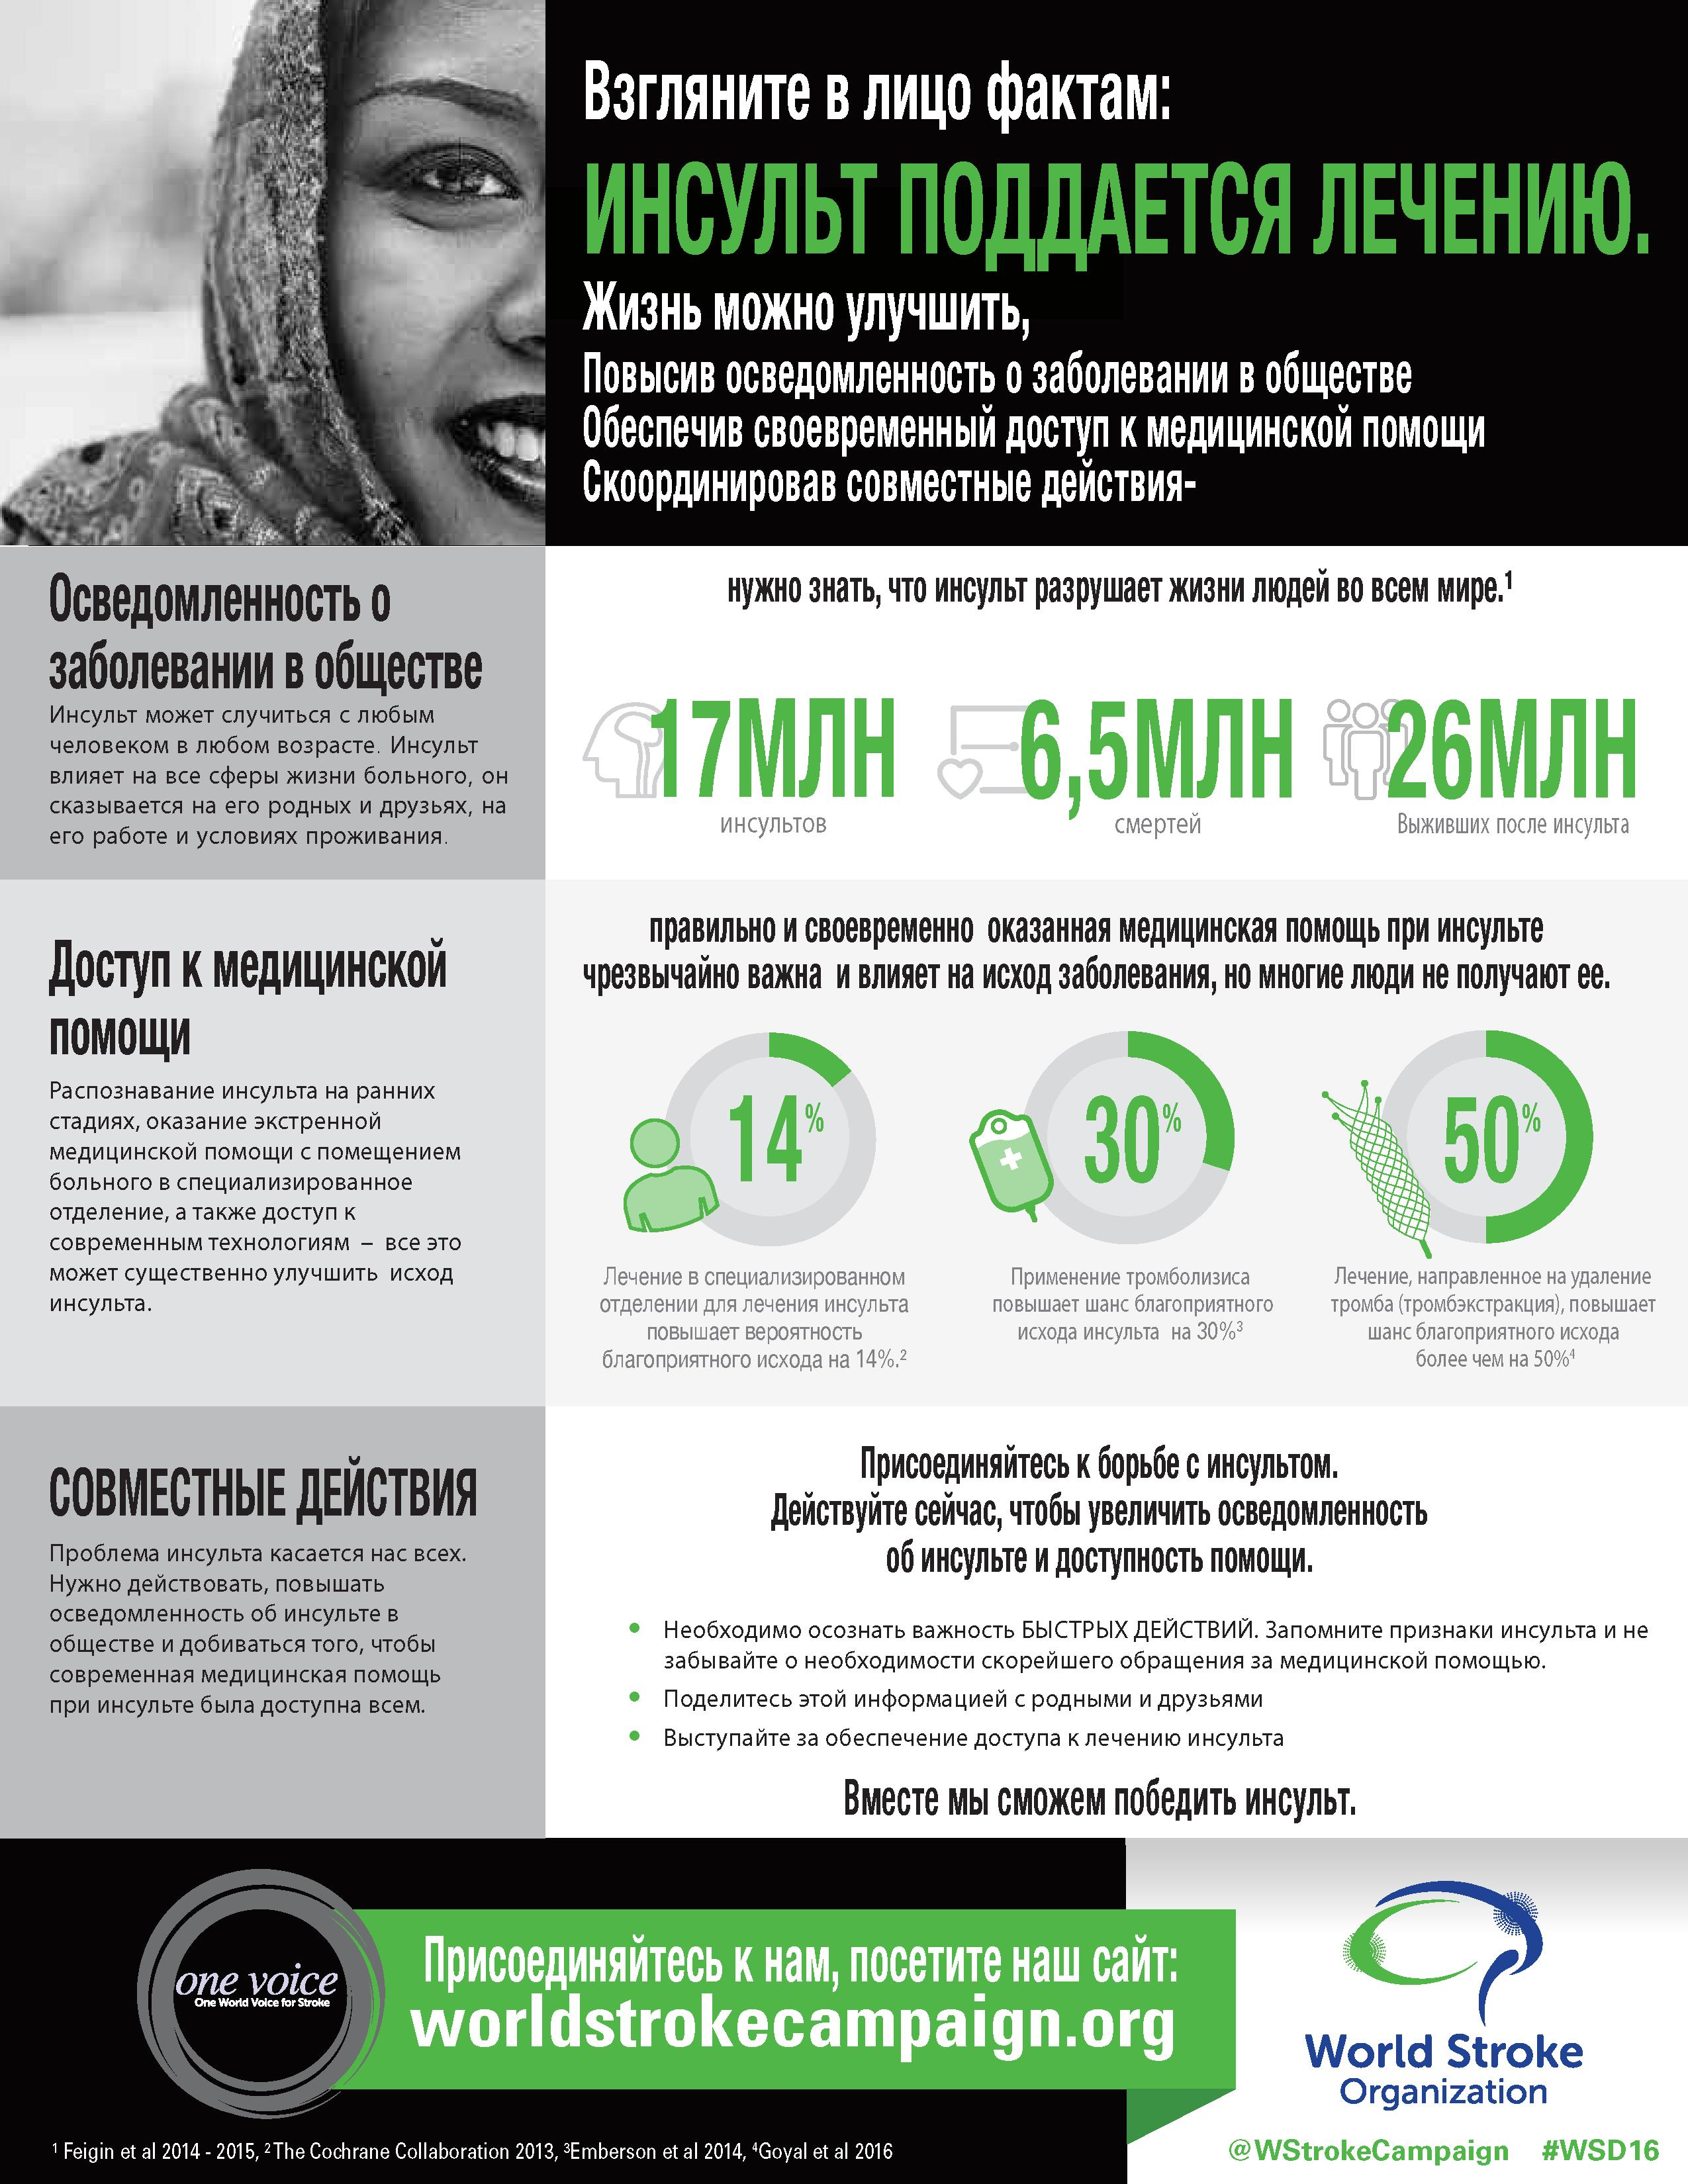 russian-infographic-wso-wsd-2016